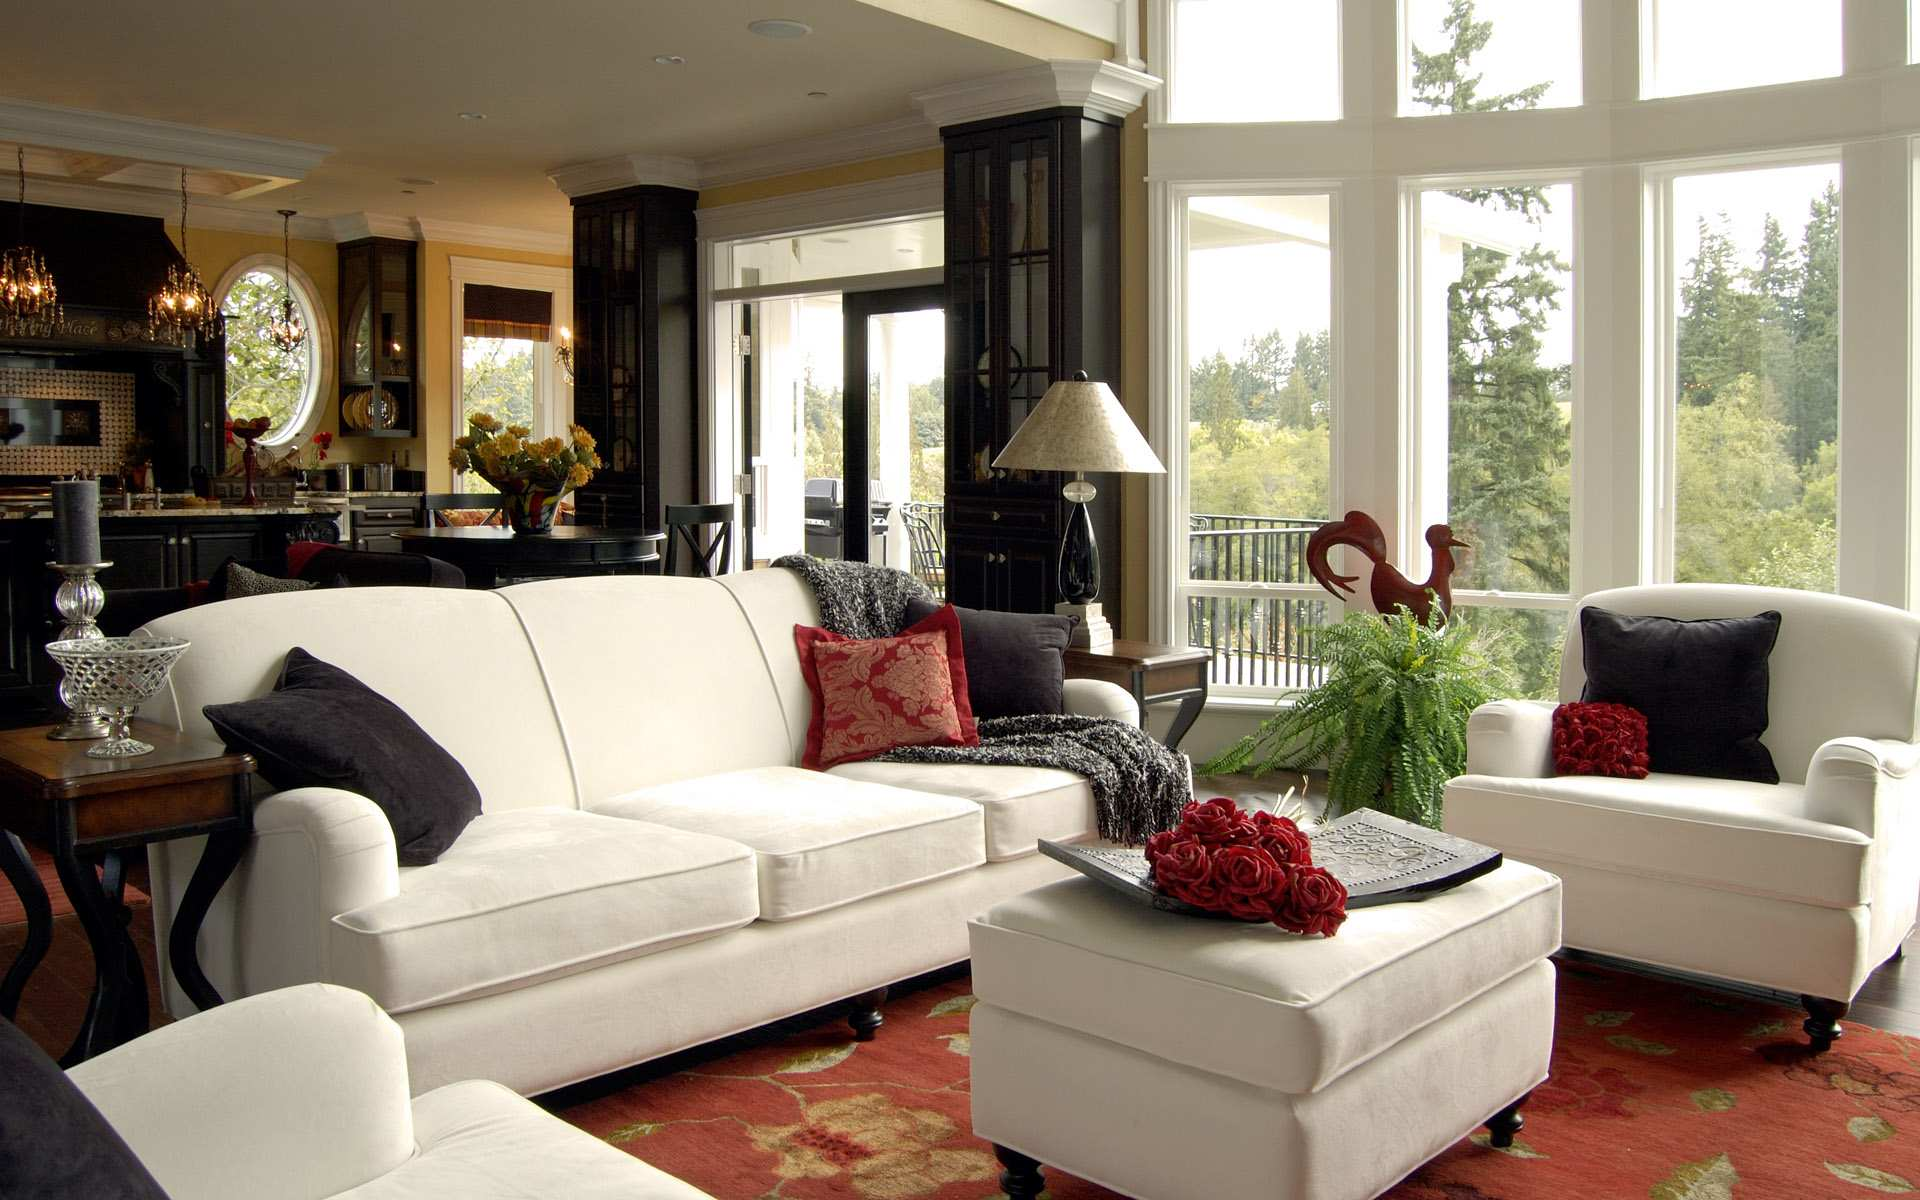 Luring Interior Living Room Inspiration With White Sofa and Table